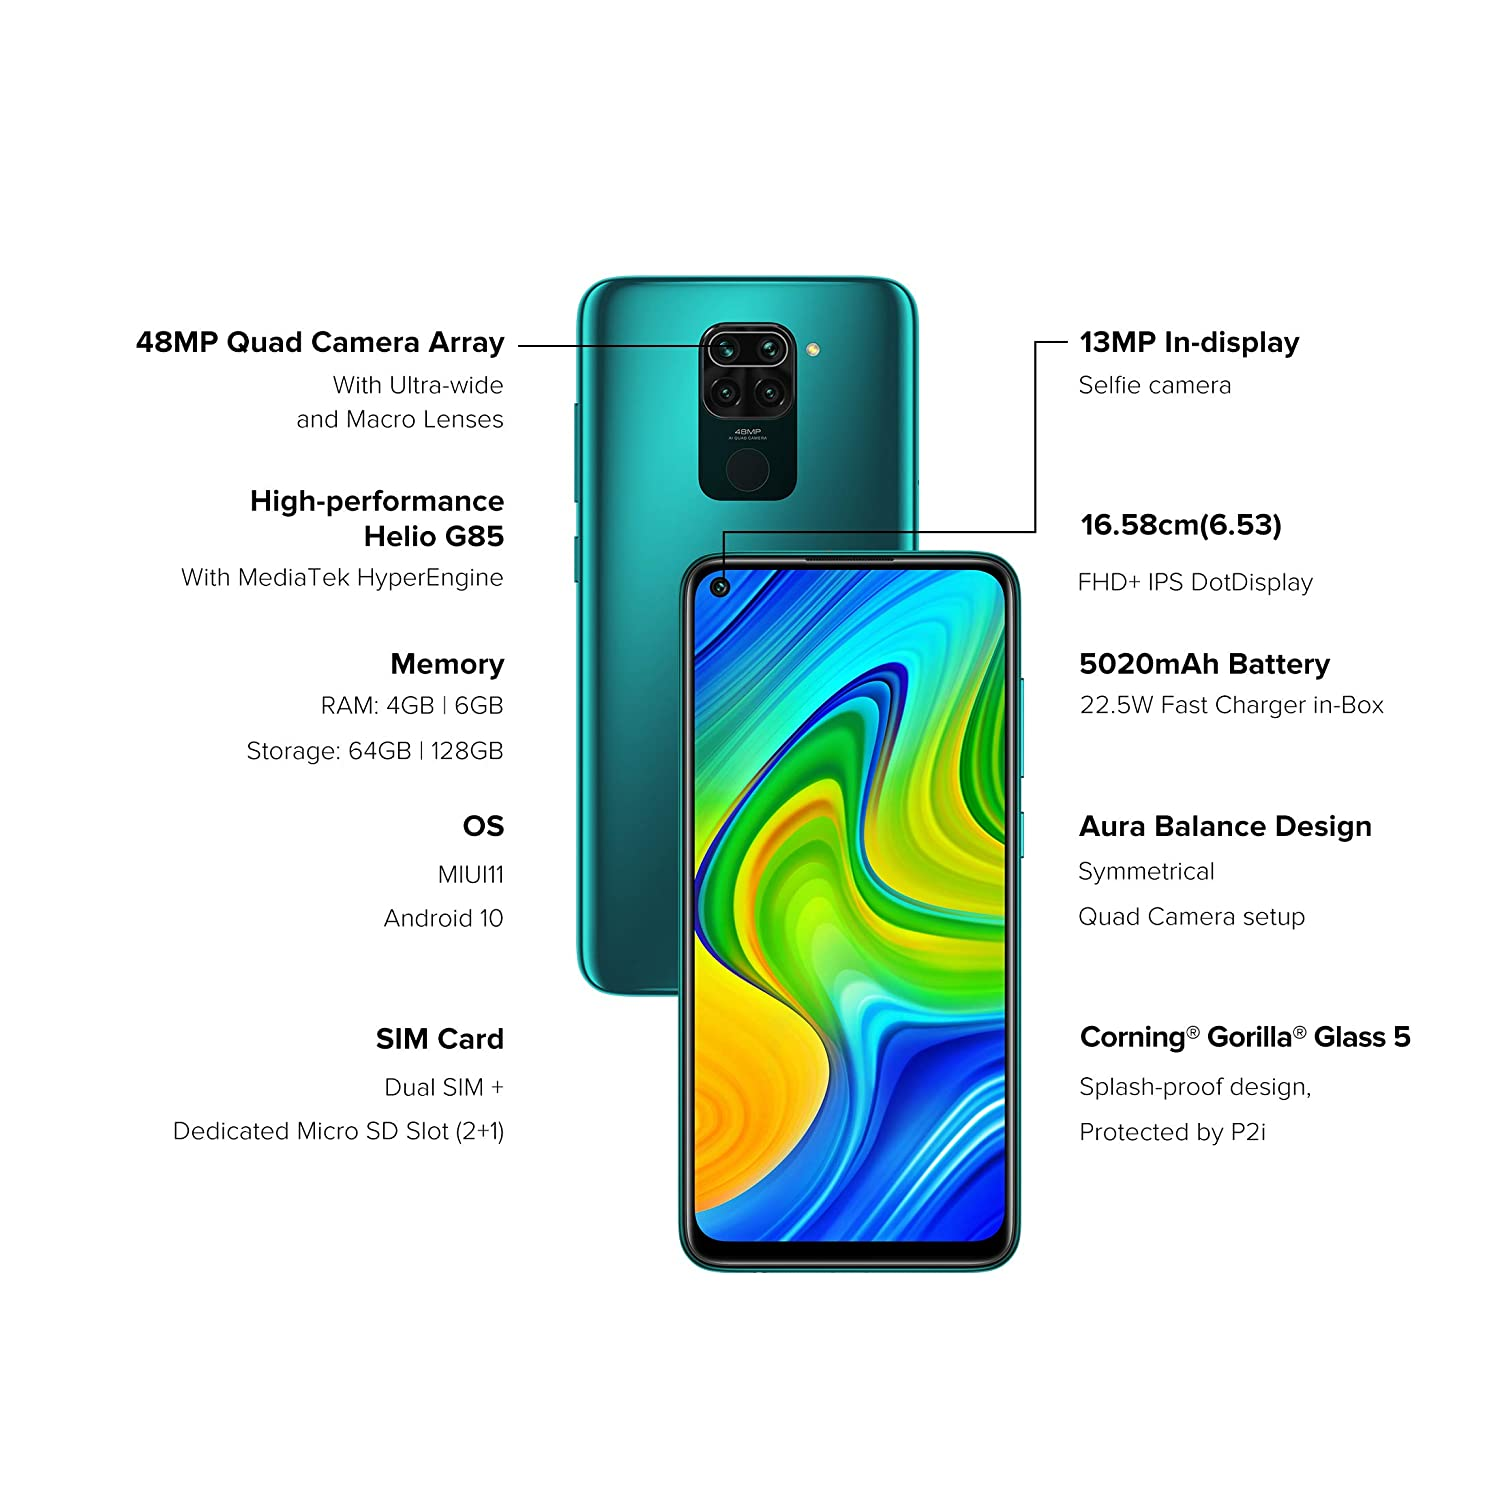 Redmi Note 9 6GB RAM /128GB Memory (Aqua Green)